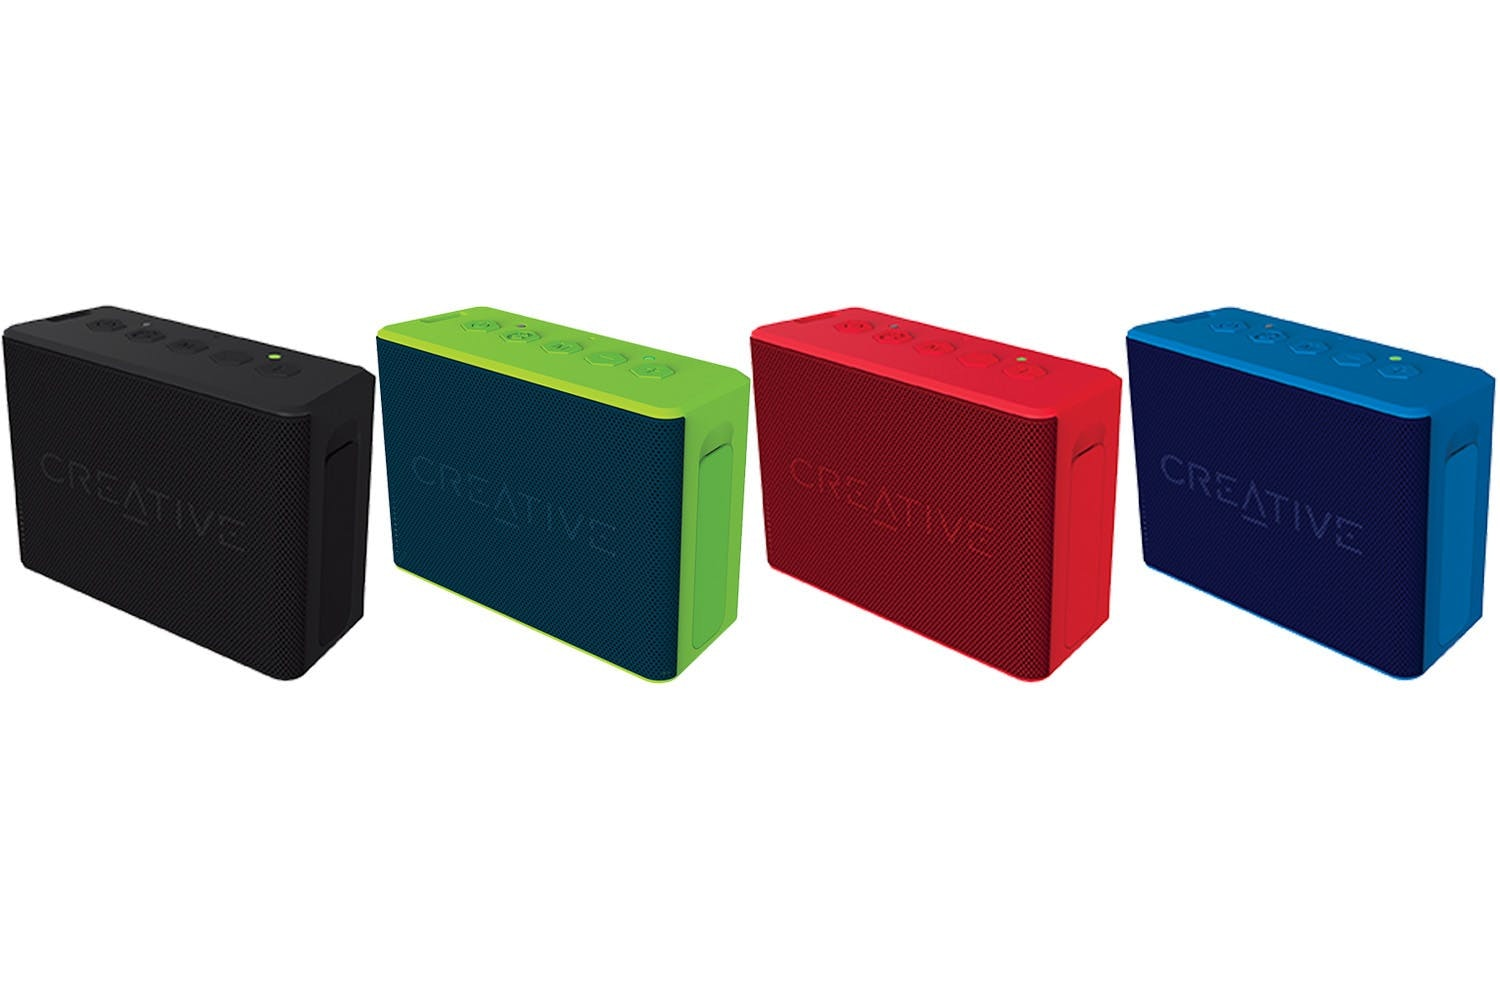 Creative MUVO 2c Mini Bluetooth Wireless Speaker